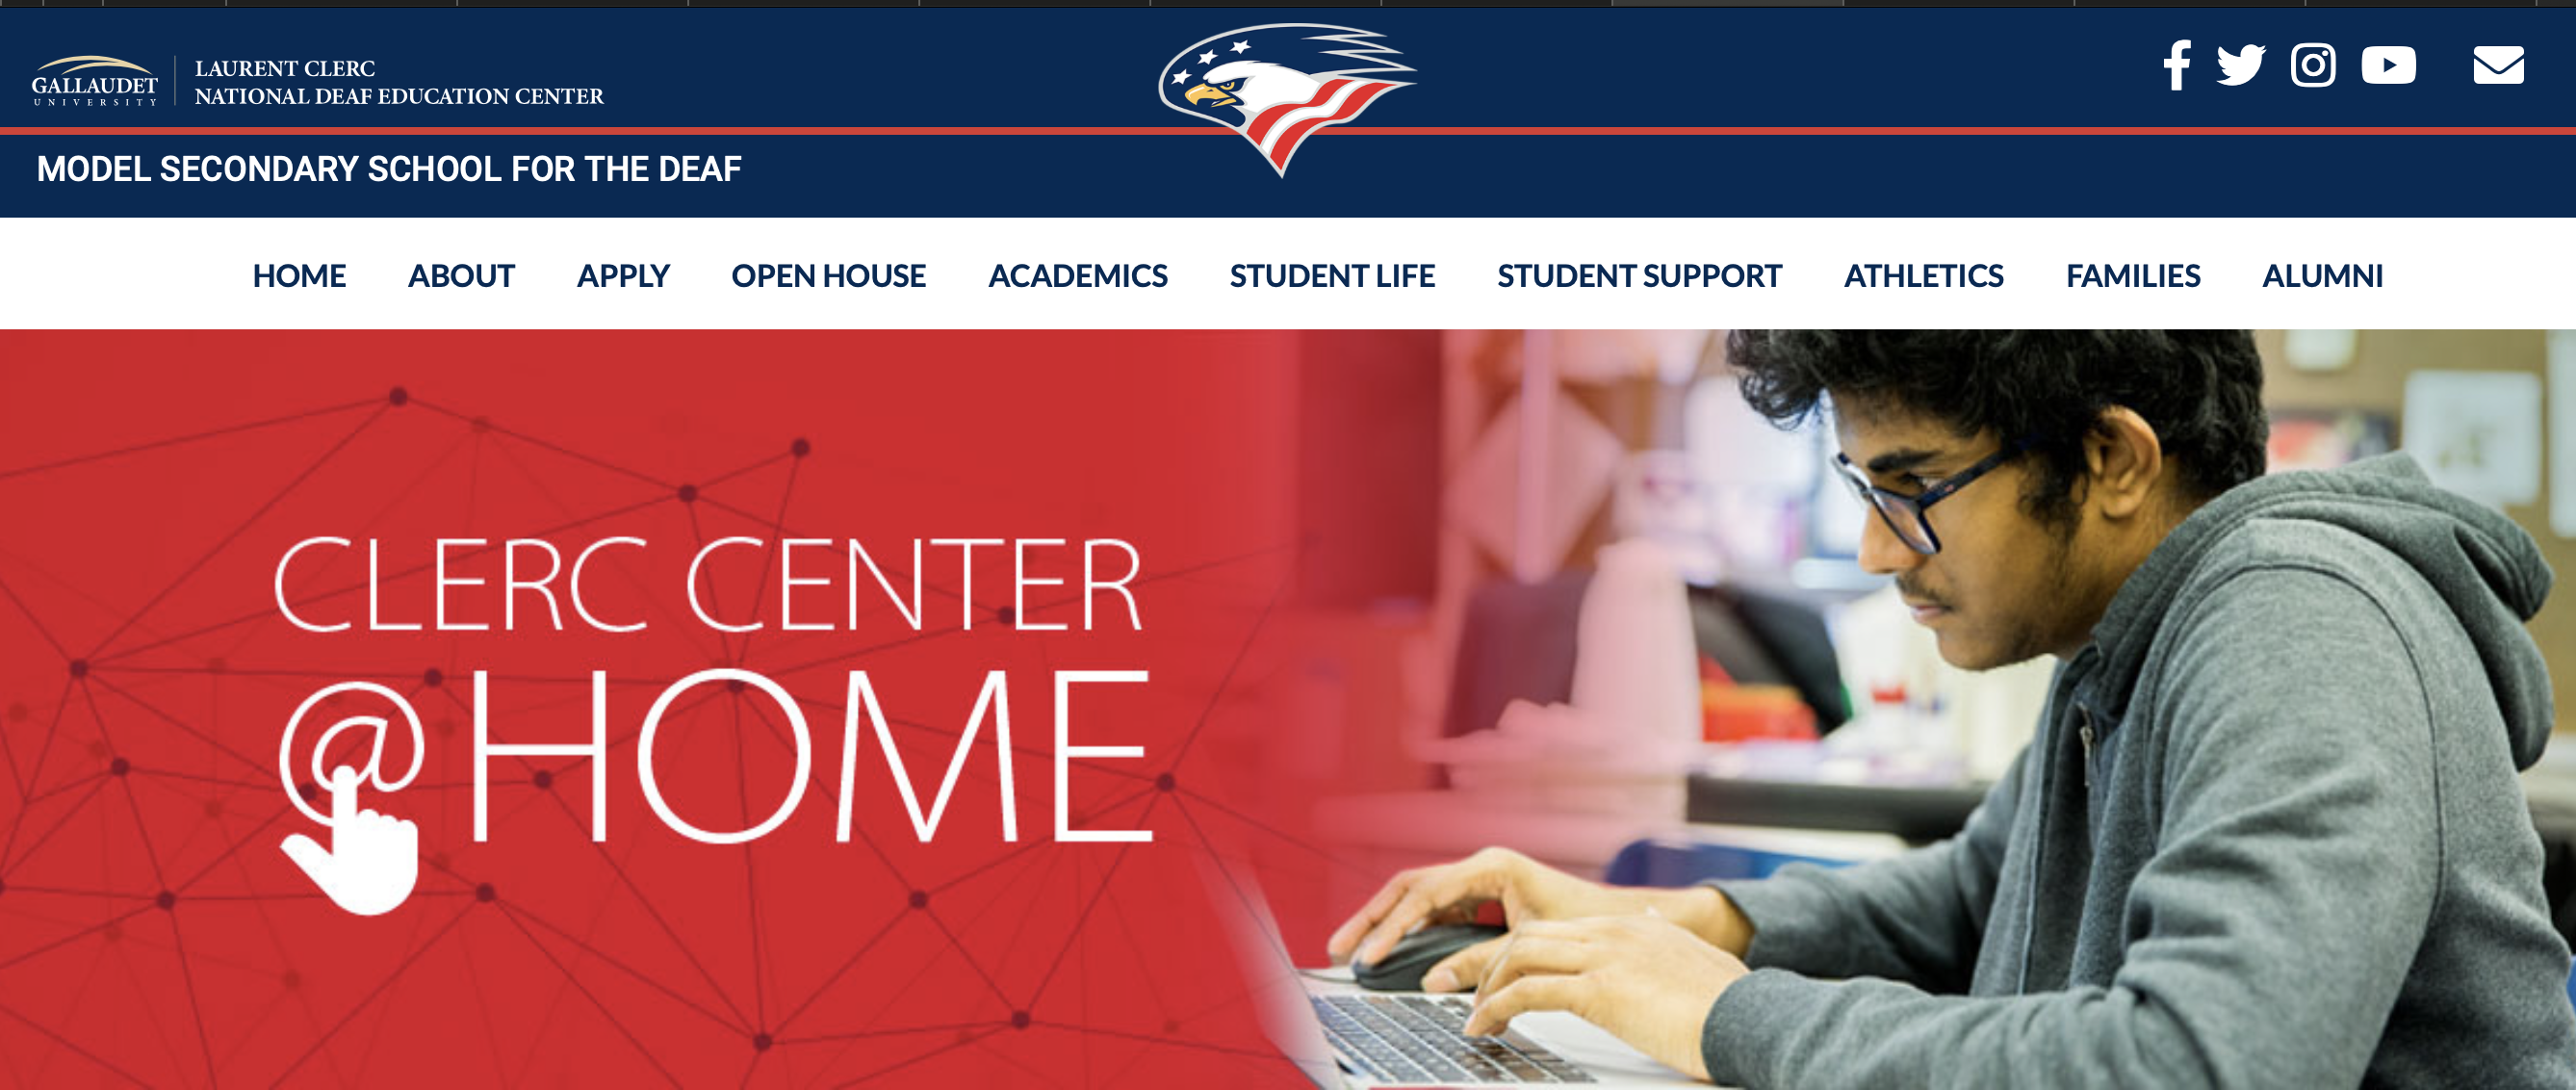 screenshot of image of MSSD website front page